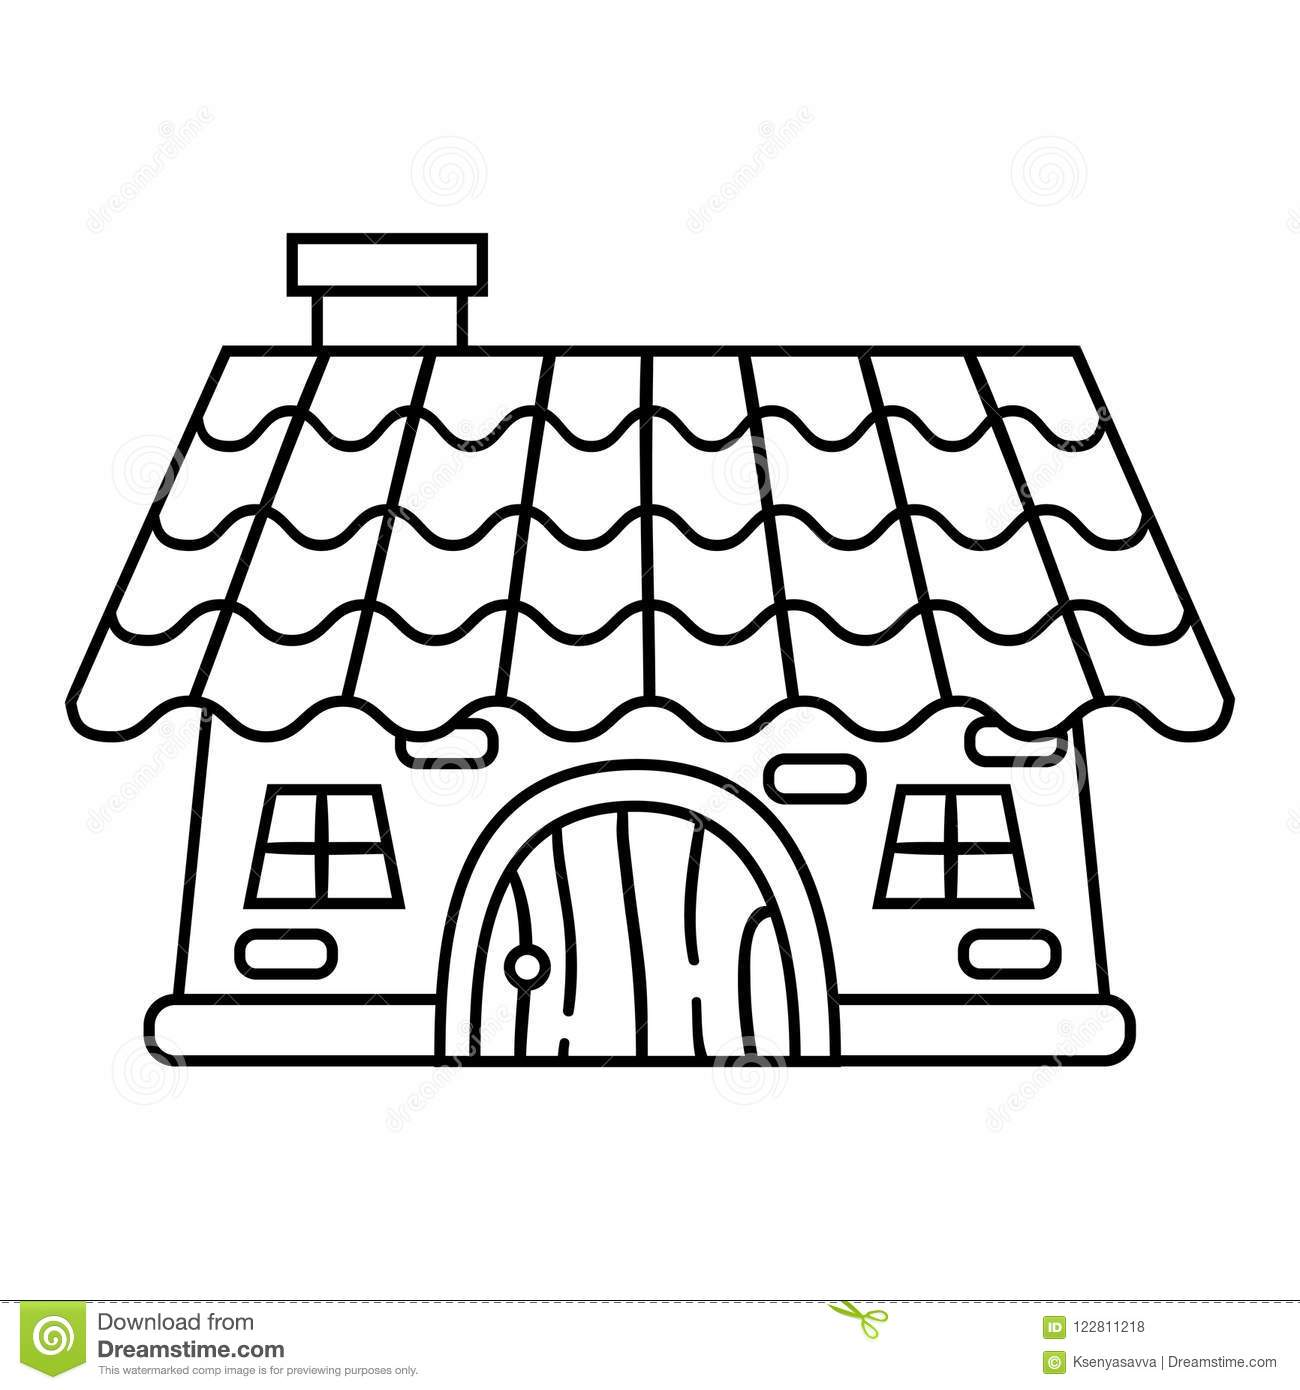 Coloring book, House stock vector. Illustration of